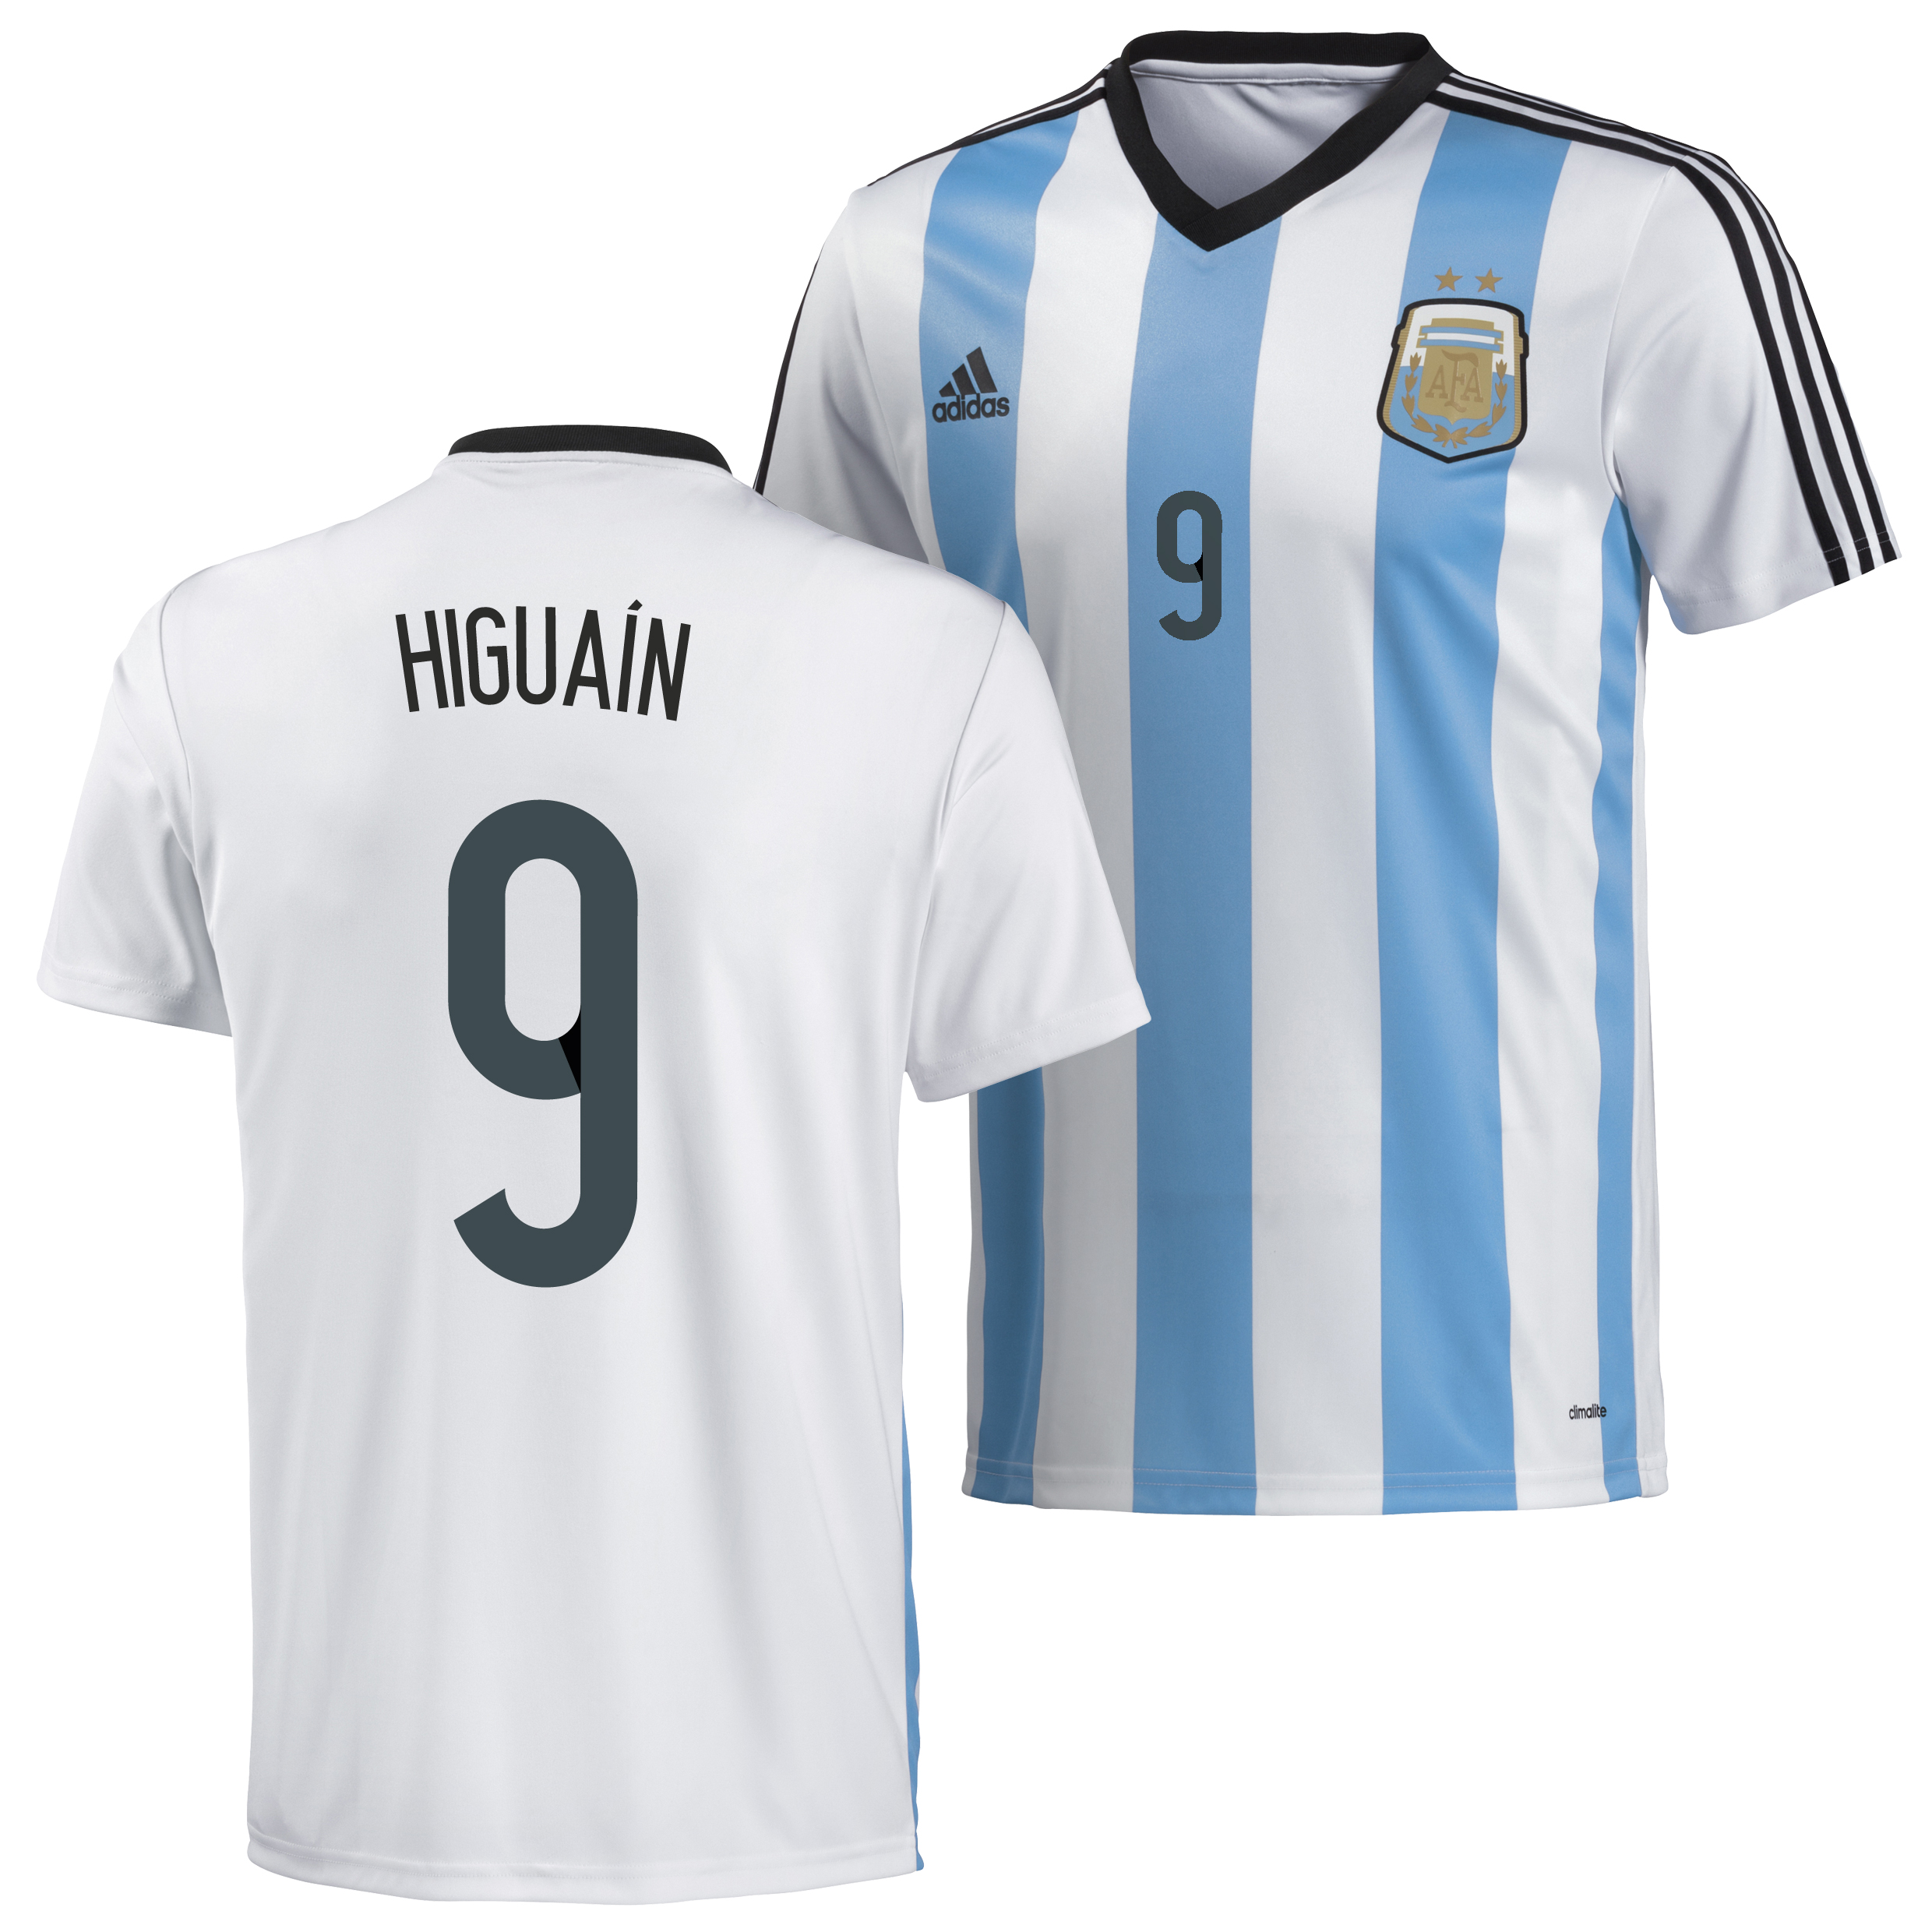 Argentina Home Replica T-Shirt 2013/14 with Higuain 9 printing